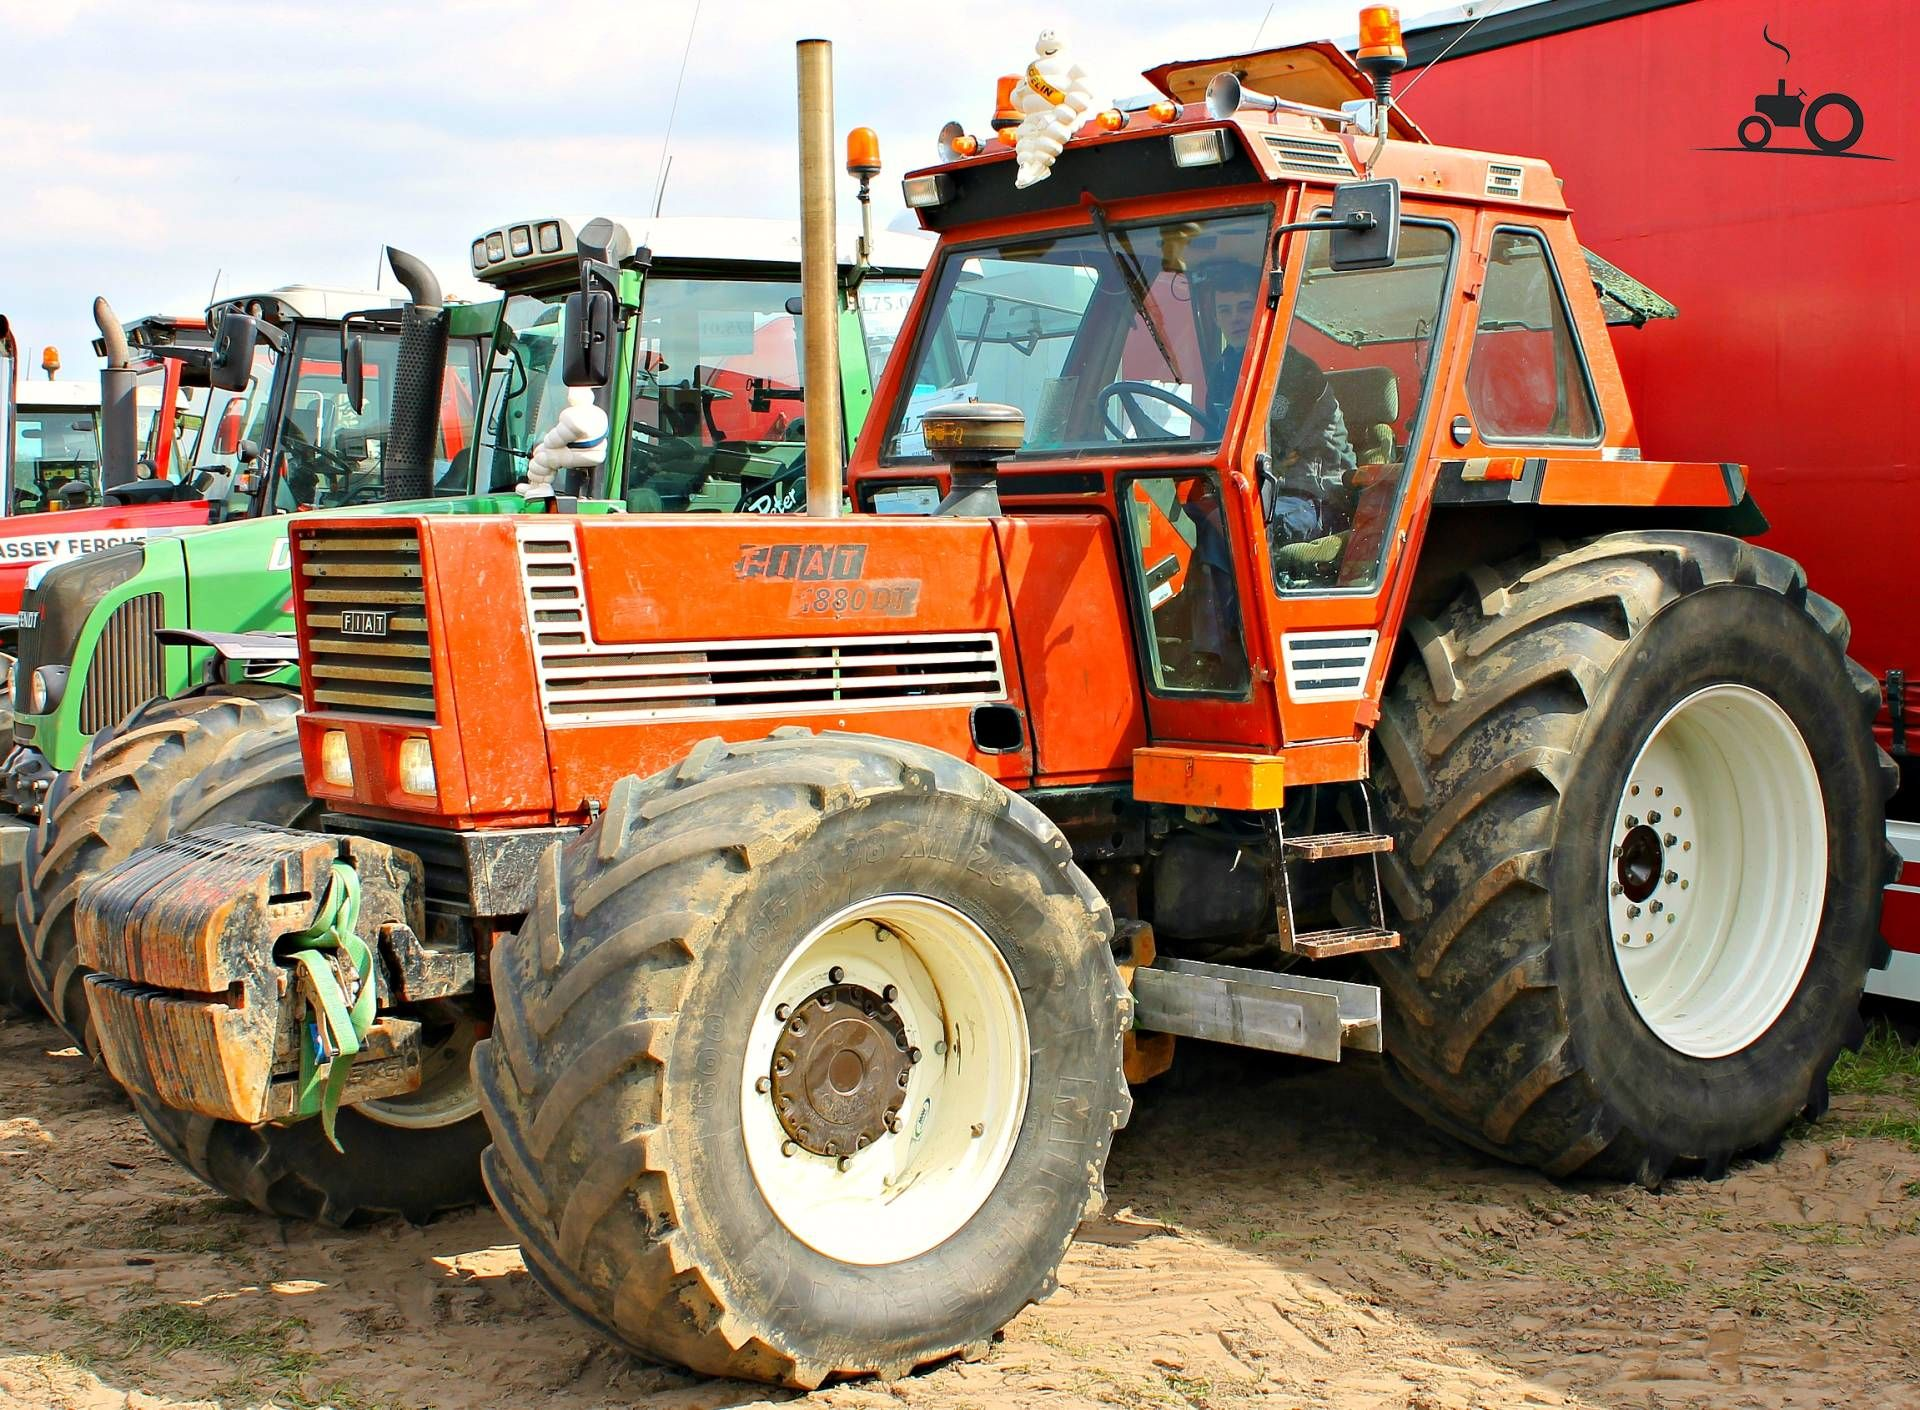 fiat 1880 dt tractor mania pinterest fiat and tractor rh pinterest com Fiat Hesston Tractors 4WD Fiat Tractor Parts